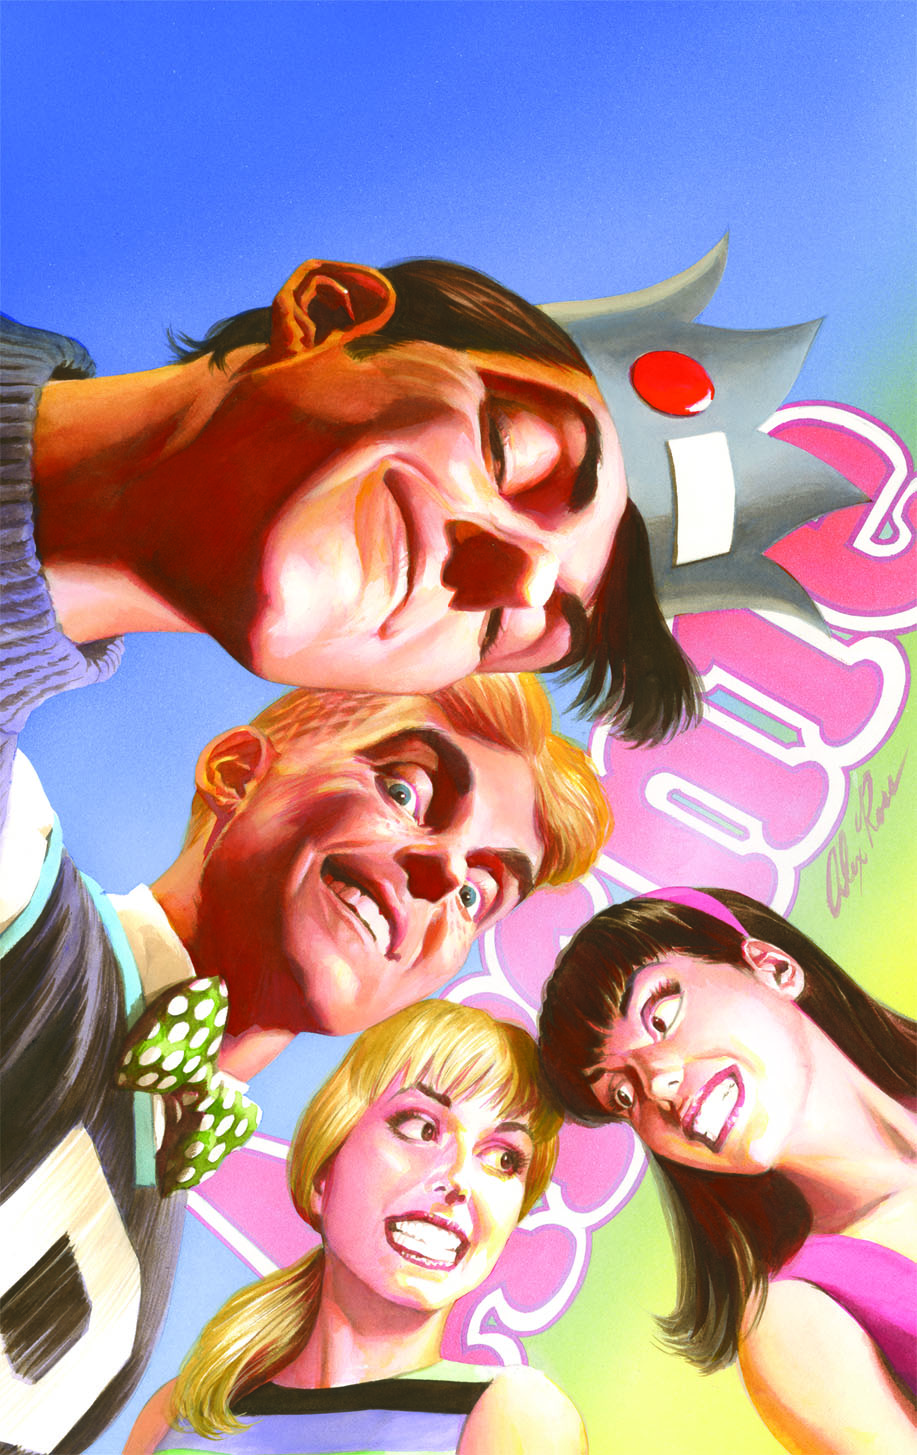 The Newest Gritty Reboot of a Comic Book Hero is... Archie? | BDCWire